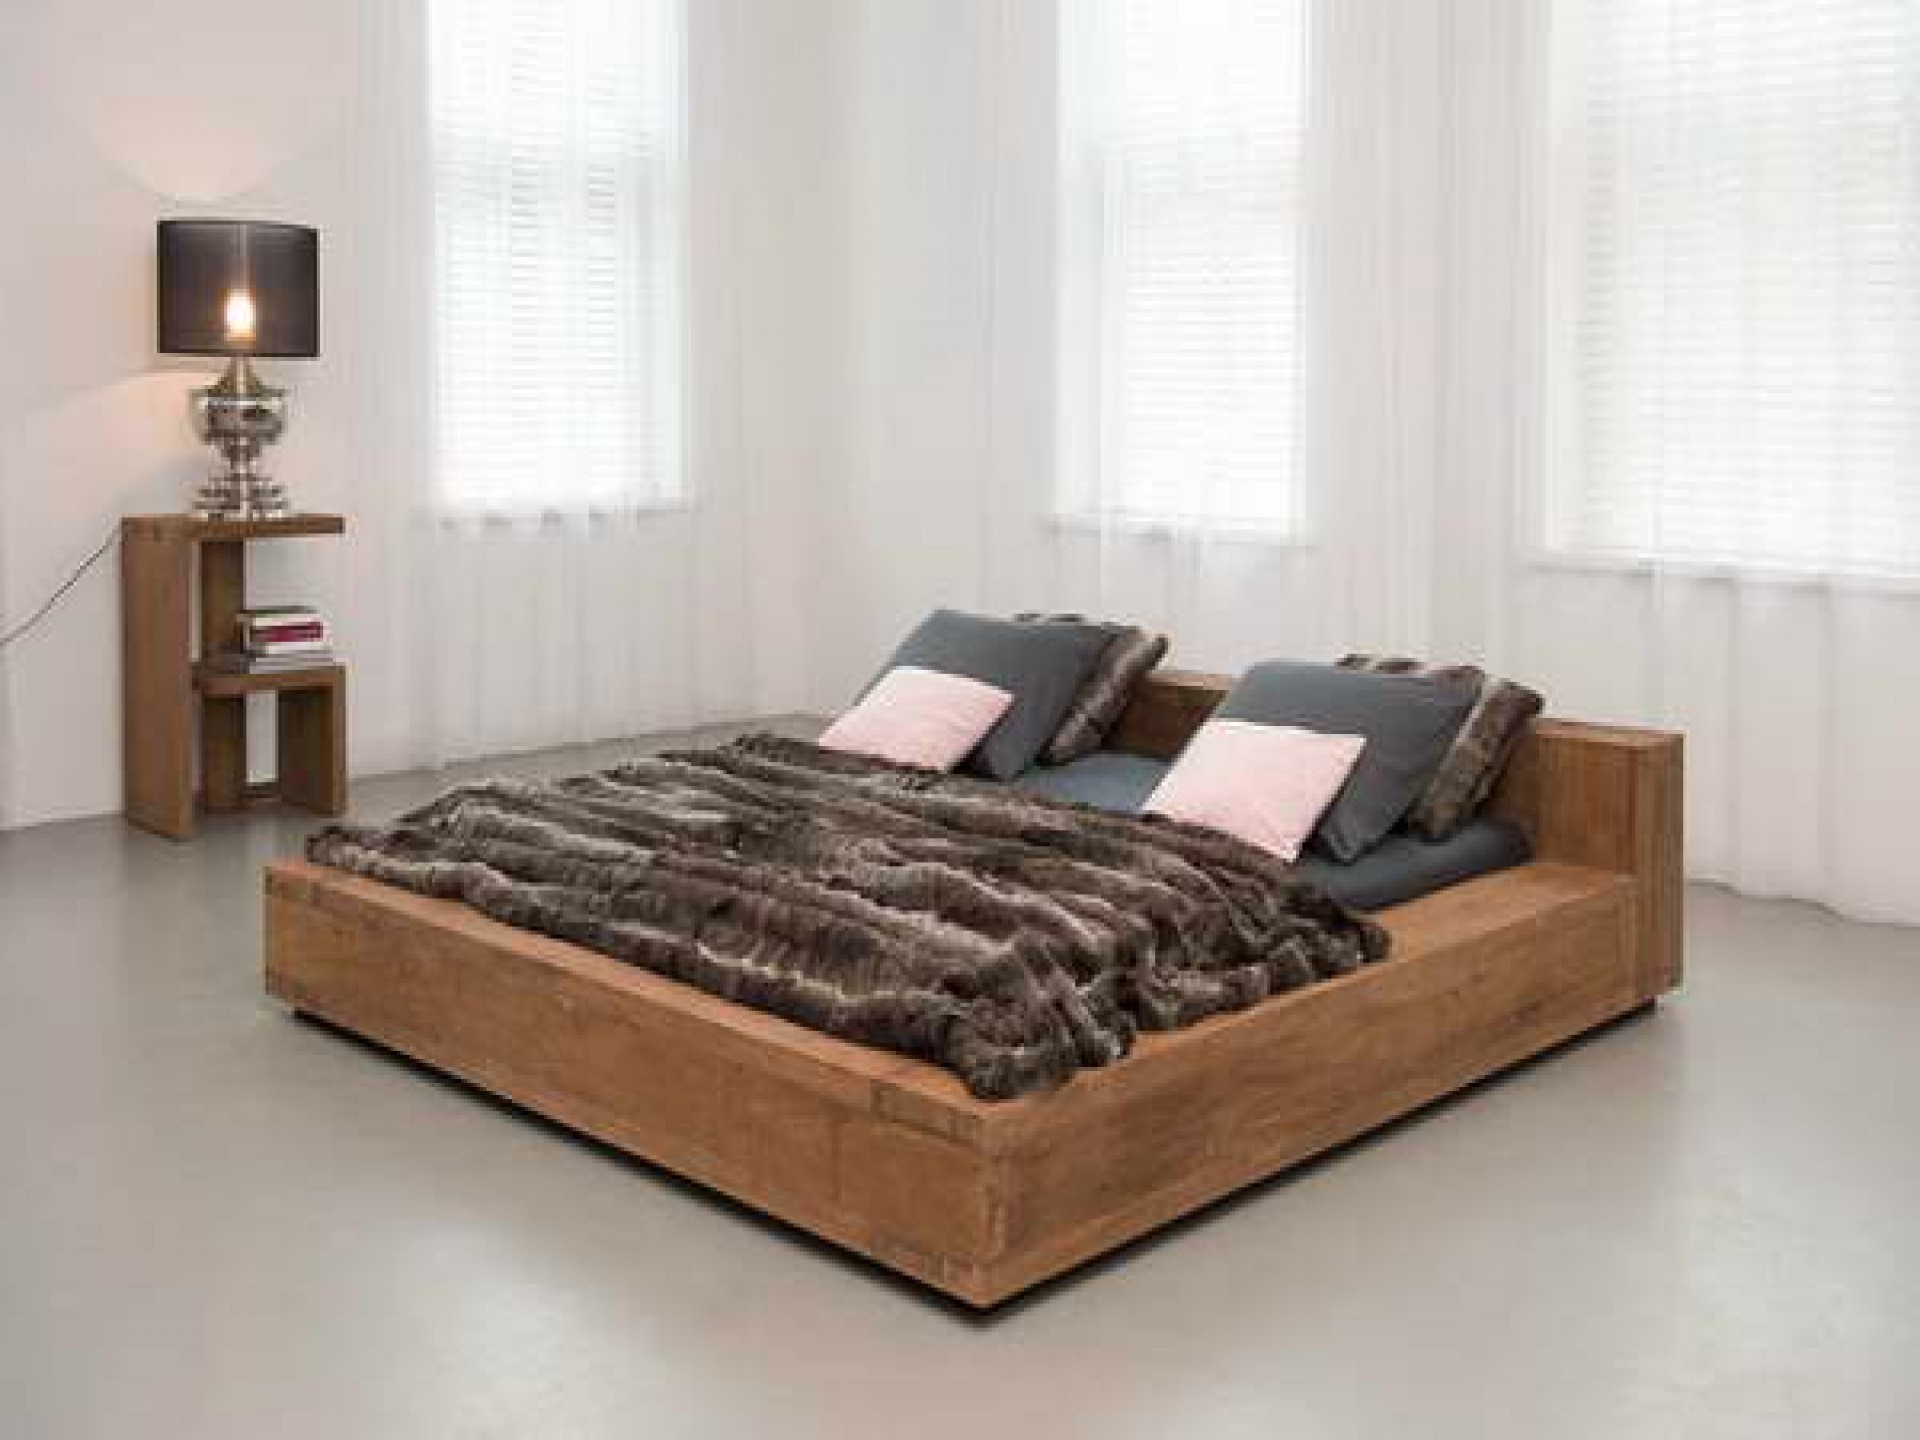 bedroom low profile wood fur blanket bed frame candle light shader curtain Low Profile Bed Frame Queen  HomesFeed